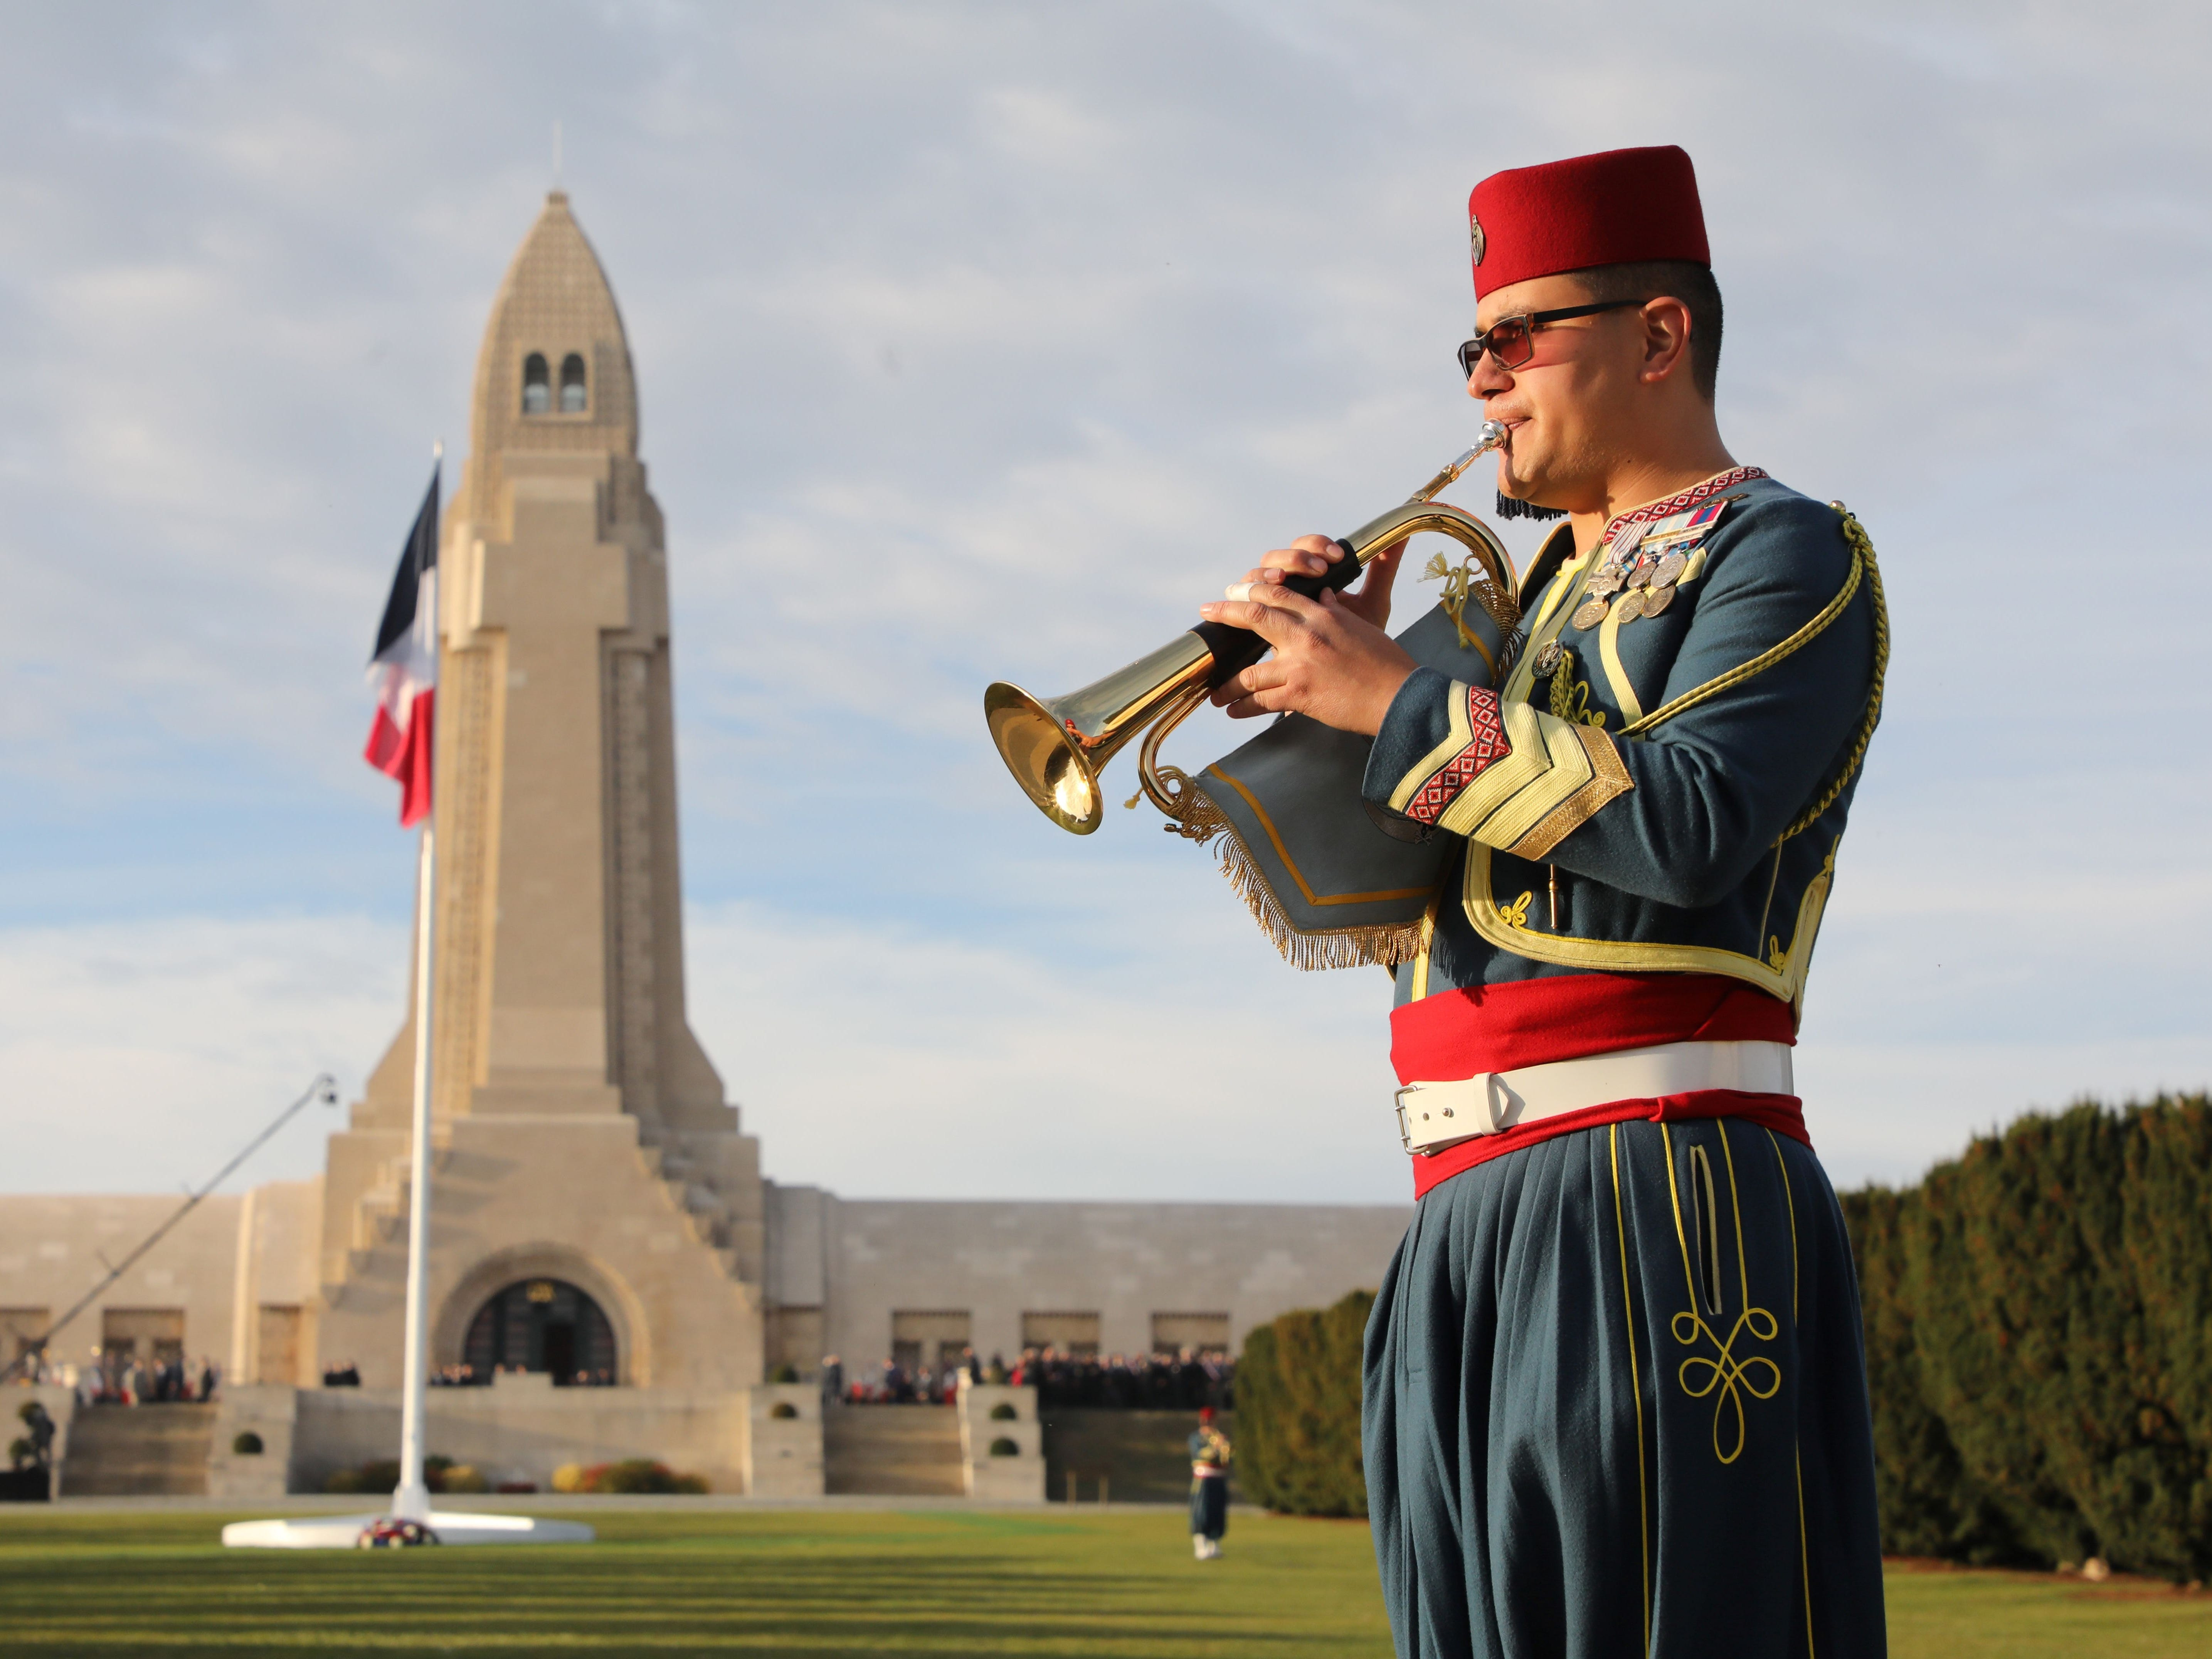 A musician dressed as a Zouave plays trumpet on November 6, 2018 at the Ossuary of Douaumont near Verdun, northeastern France, during ceremonies marking the centenary of the First World War. - The French President kicked off a week of commemorations for the 100th anniversary of the end of World War One, which is set to mix remembrance of the past and warnings about the present surge in nationalism around the globe. (Photo by ludovic MARIN / various sources / AFP)LUDOVIC MARIN/AFP/Getty Images ORIG FILE ID: AFP_1AM31M